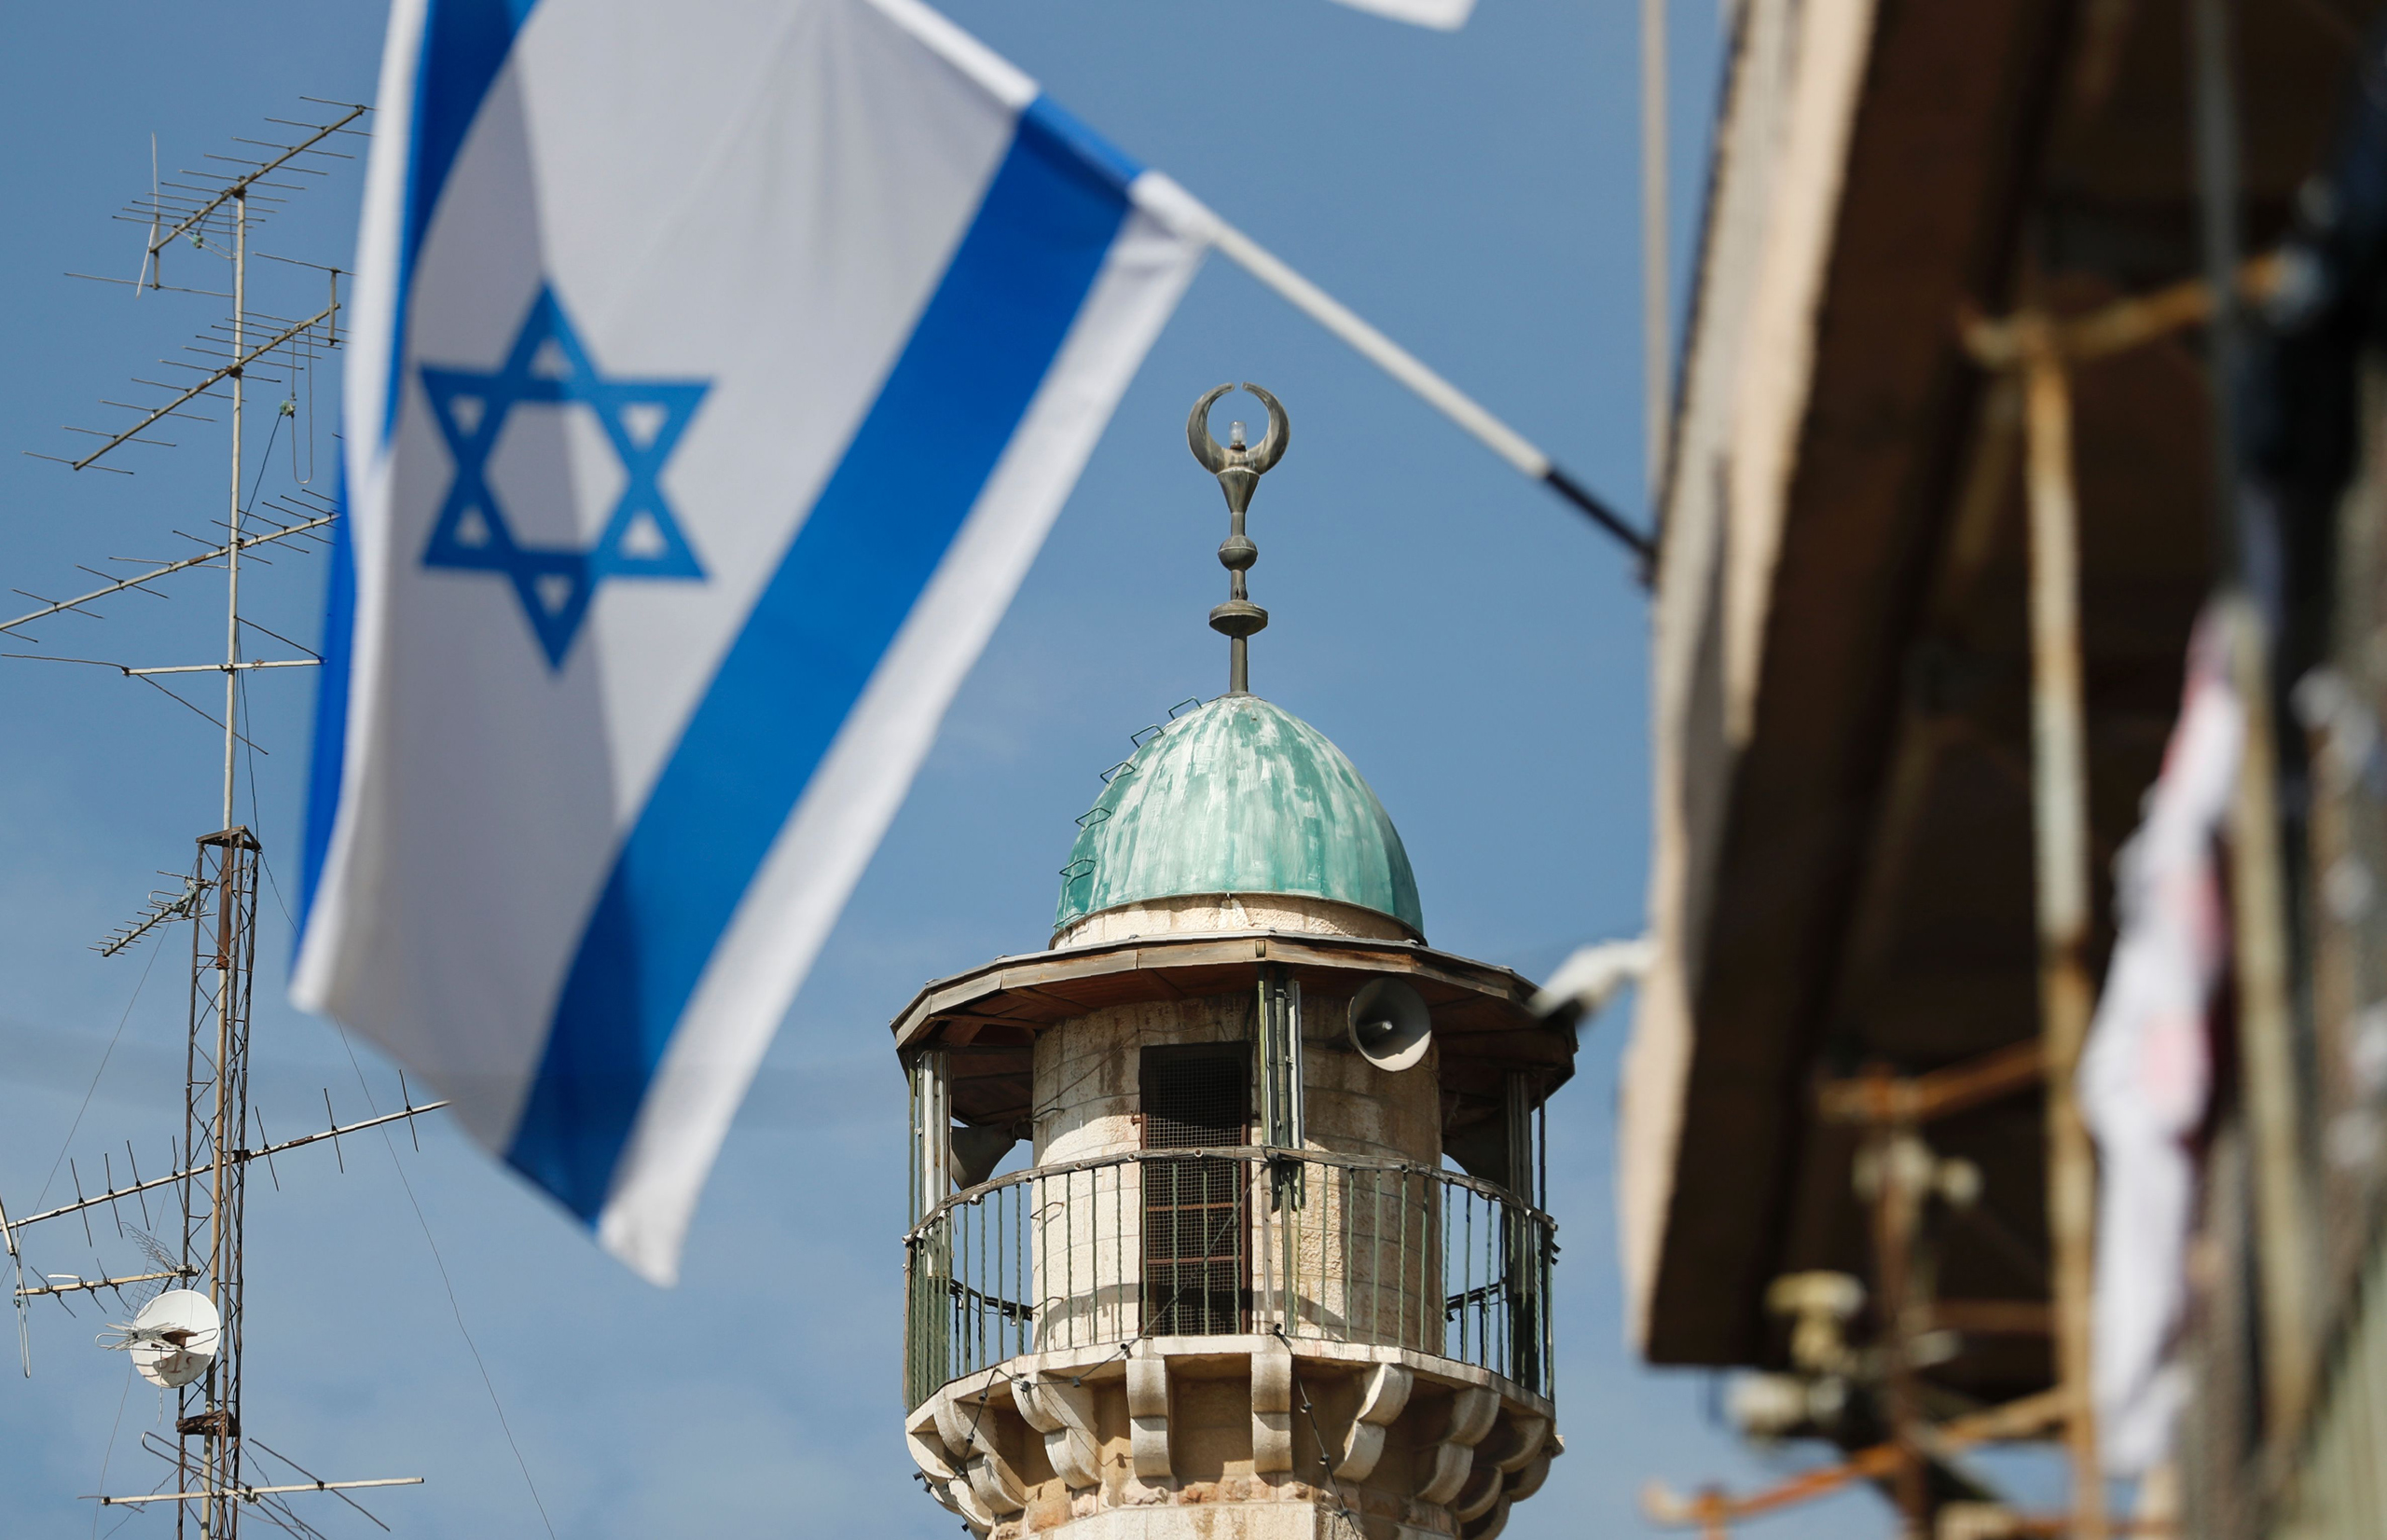 An Israeli flag waves in front of a mosque in the Arab quarter of Jerusalem's Old City on November 14, 2016. Israeli Prime Minister Benjamin Netanyahu said he backed a bill limiting the volume of calls to prayer from mosques, a proposal critics have called a threat to religious freedom.